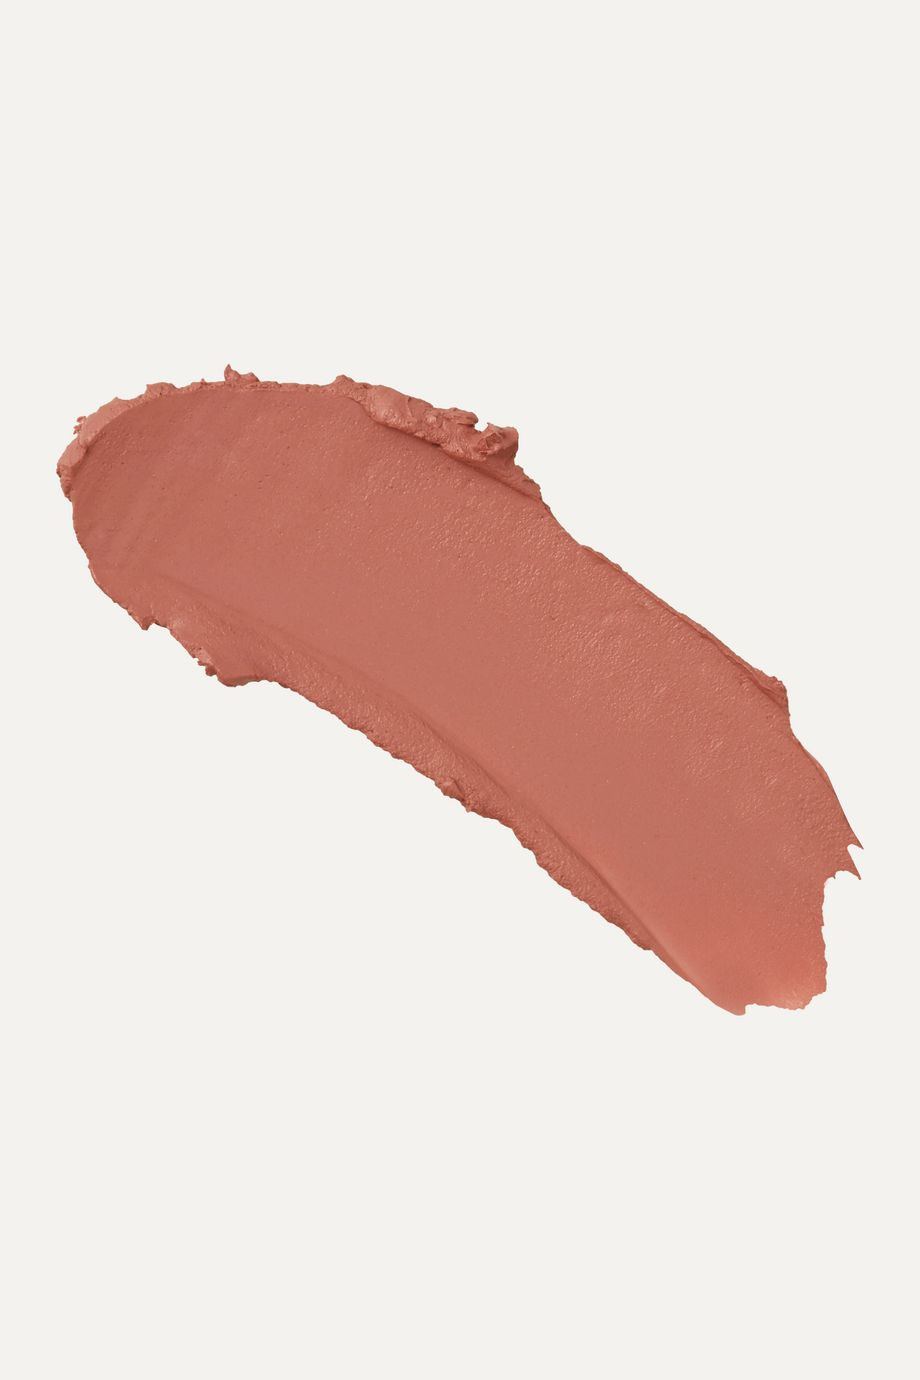 Charlotte Tilbury Hollywood Lips Matte Contour Liquid Lipstick – Charlotte Darling